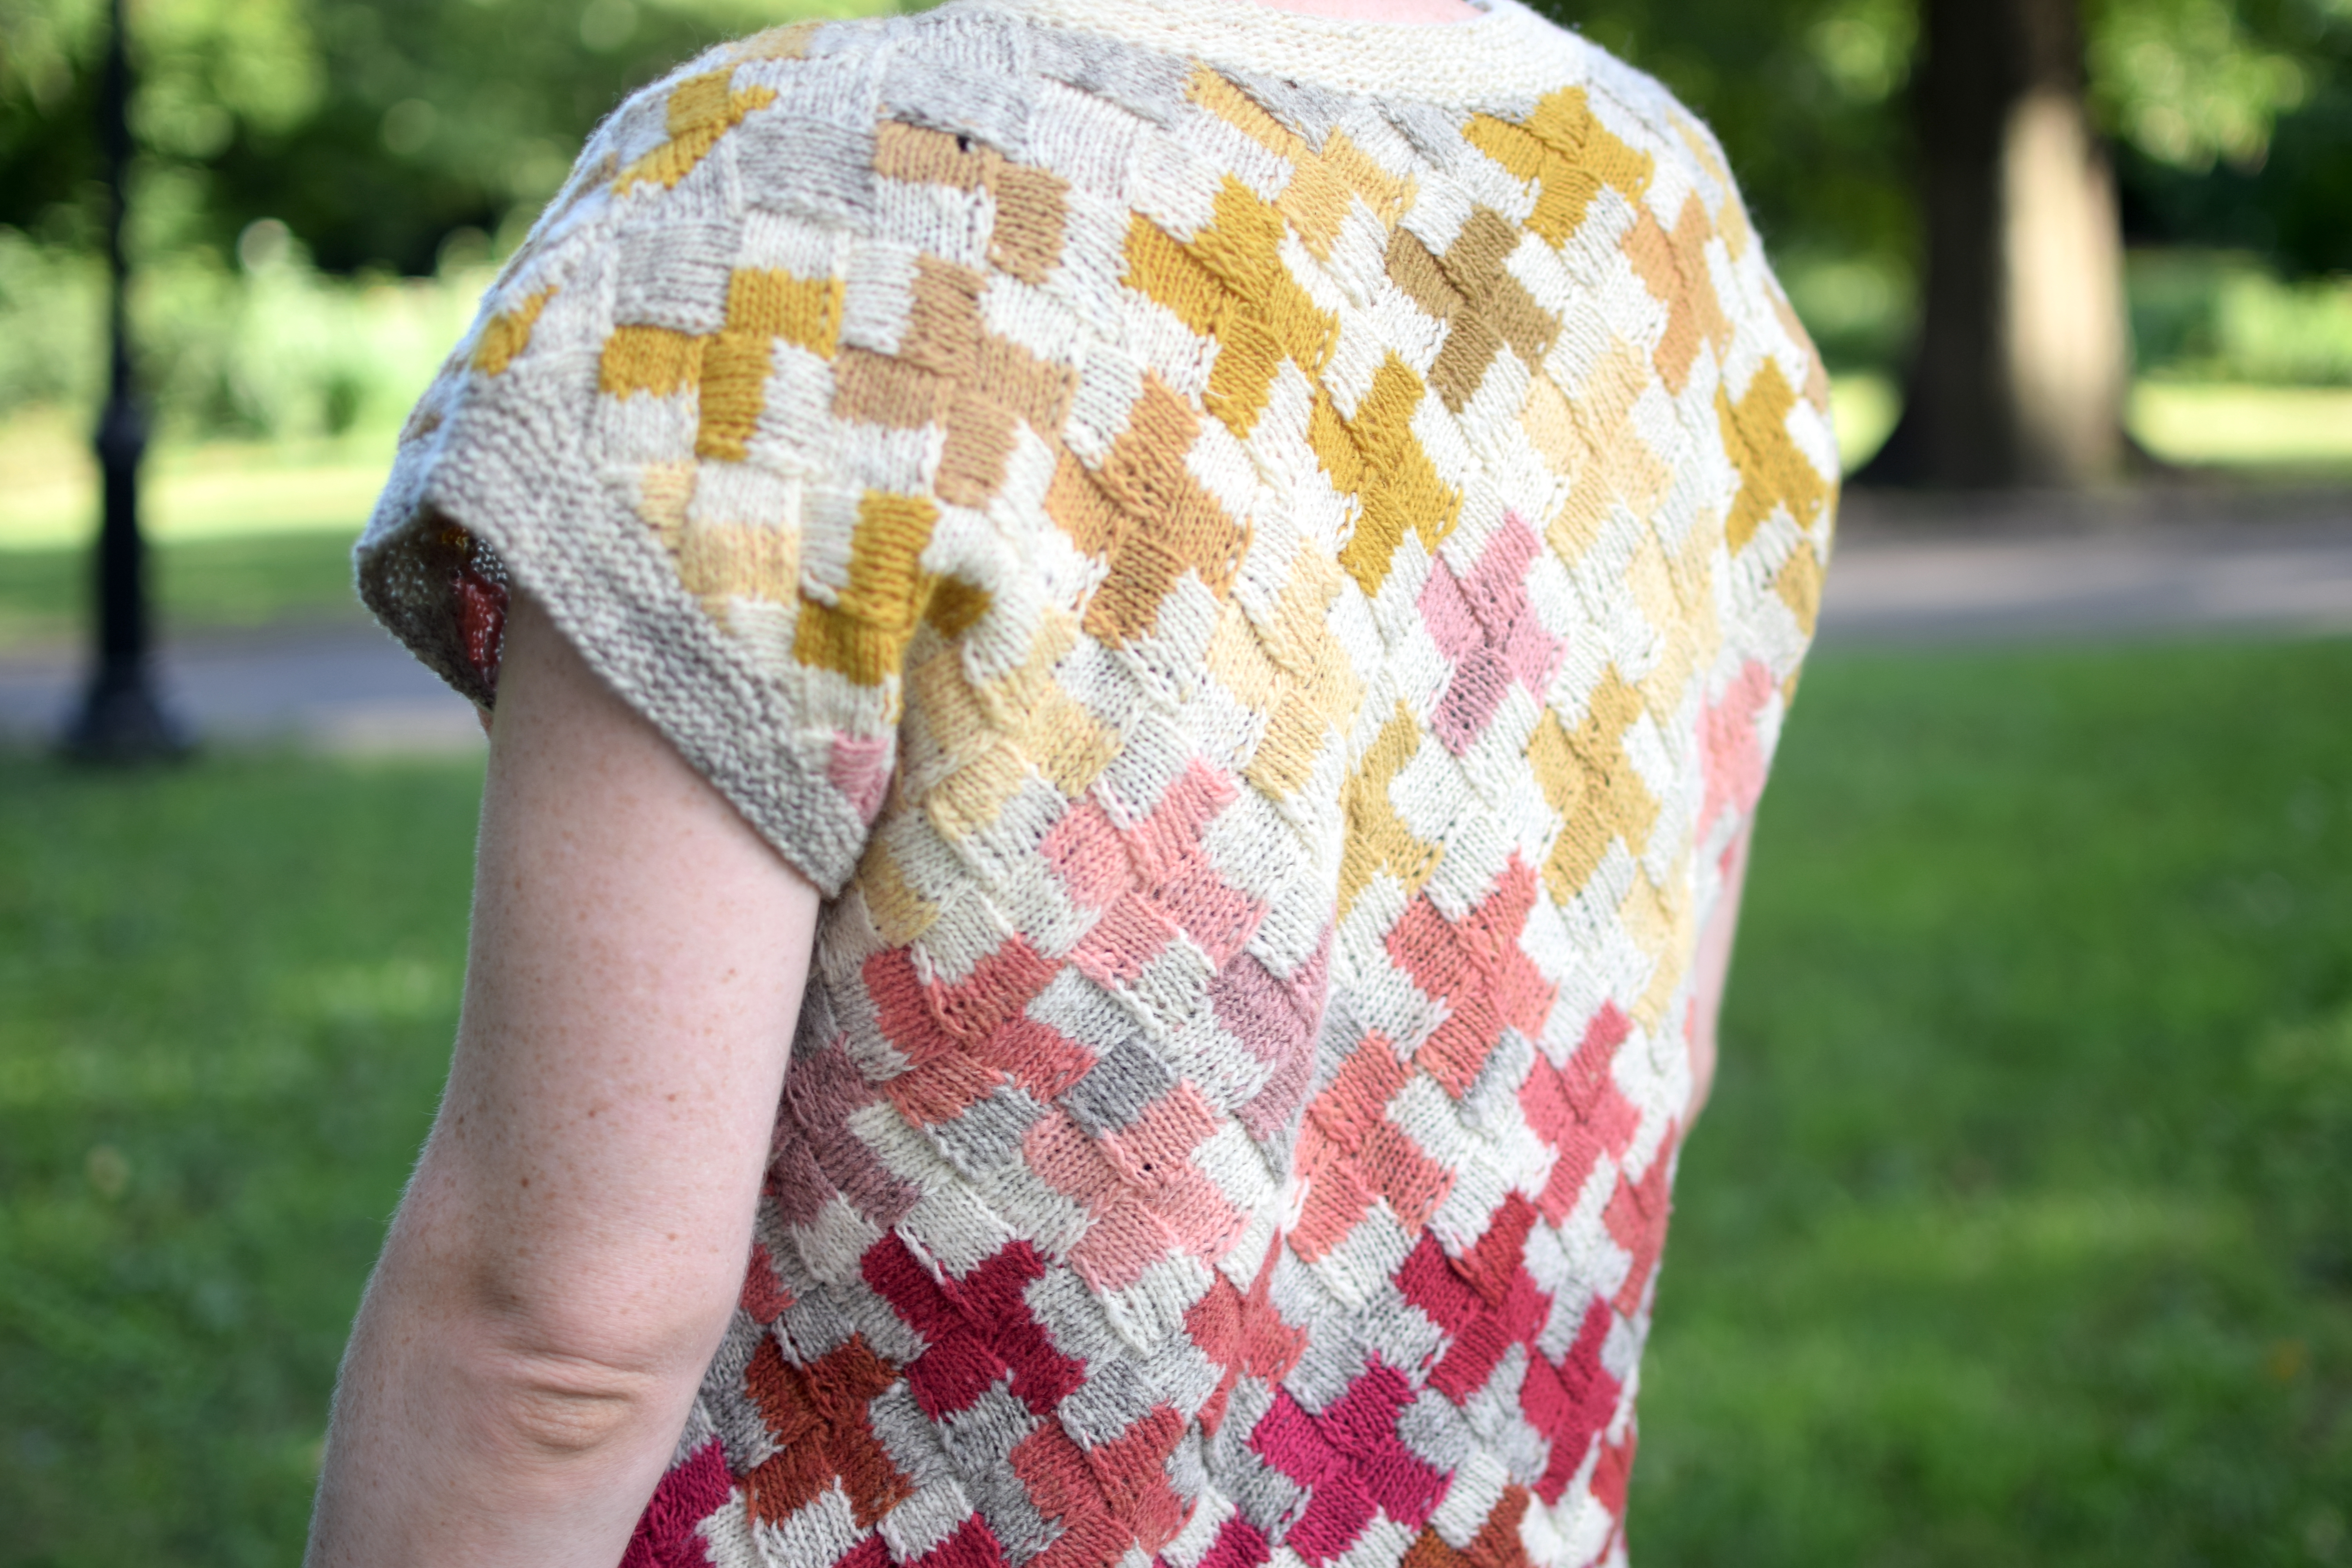 a woman wears a hand-knitted sweater in a park.